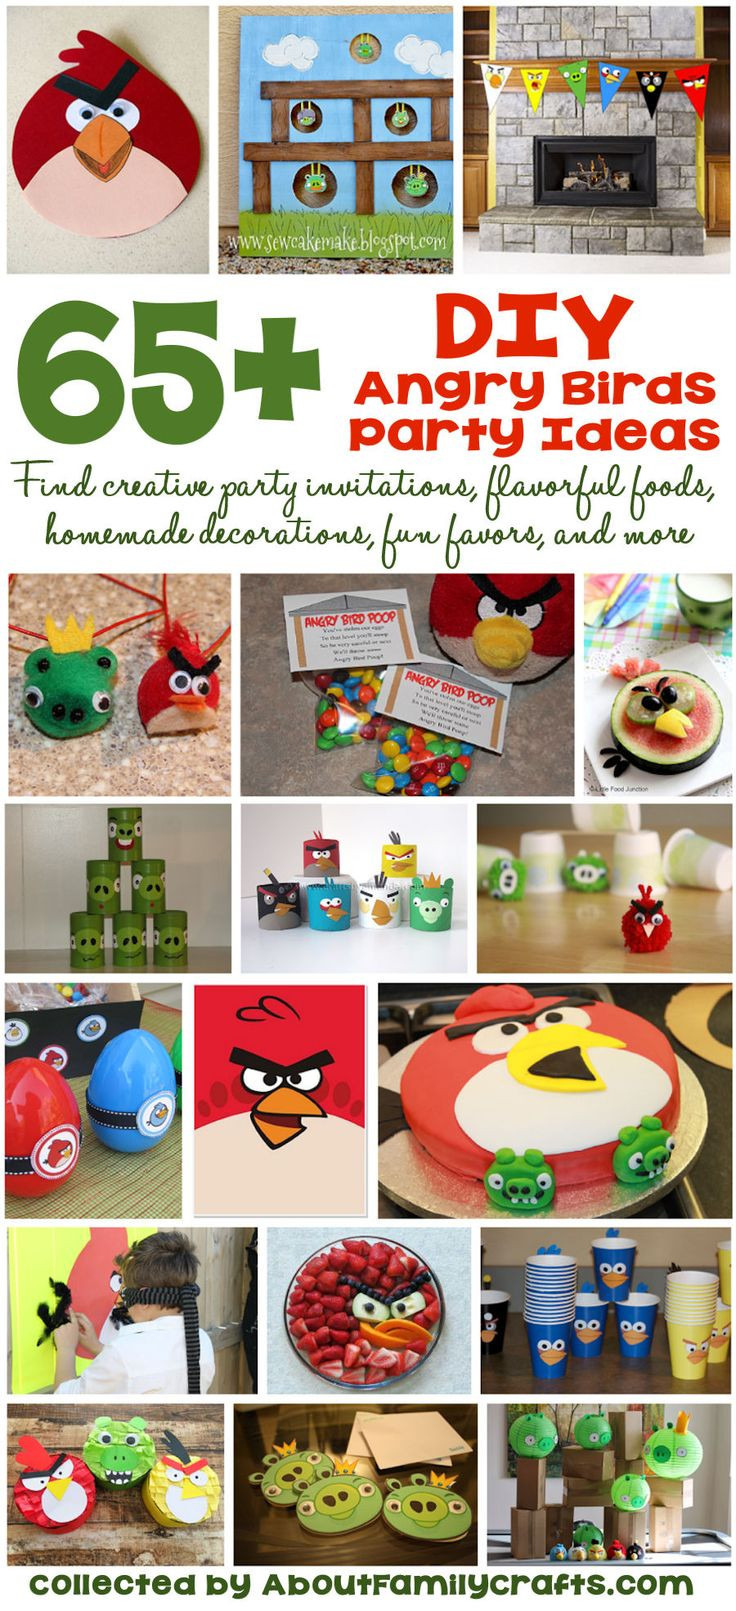 65+ DIY Angry Birds Party Ideas - If you are planning an Angry Bird themed birthday party, you will definitely want to consult this list of do-it-yourself party supplies! (http://aboutfamilycrafts.com/65-diy-angry-birds-party-ideas/)